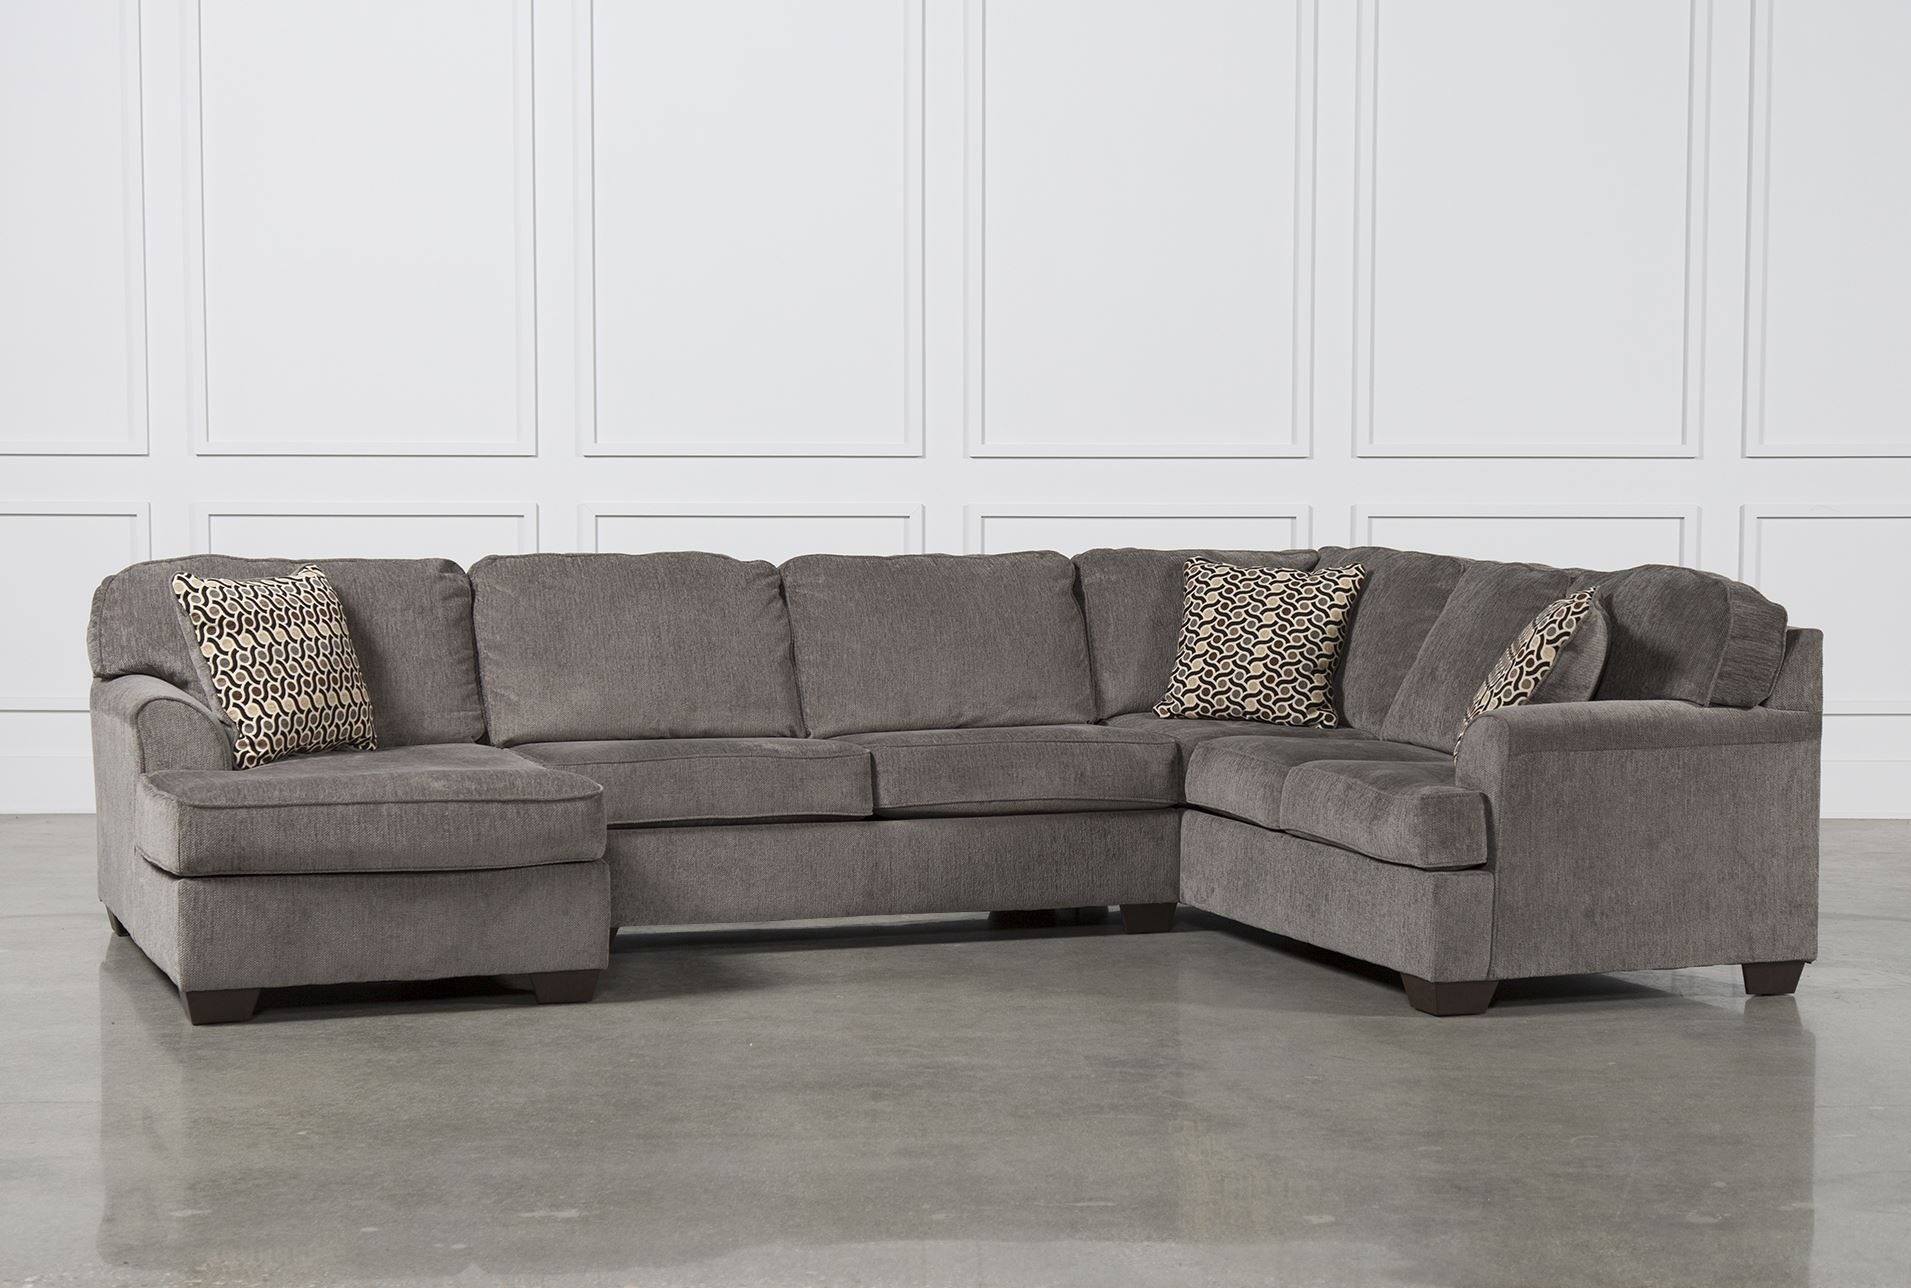 Loric Smoke 3 Piece Sectional W/laf Chaise | Tricia's House Intended For Meyer 3 Piece Sectionals With Laf Chaise (Image 13 of 25)